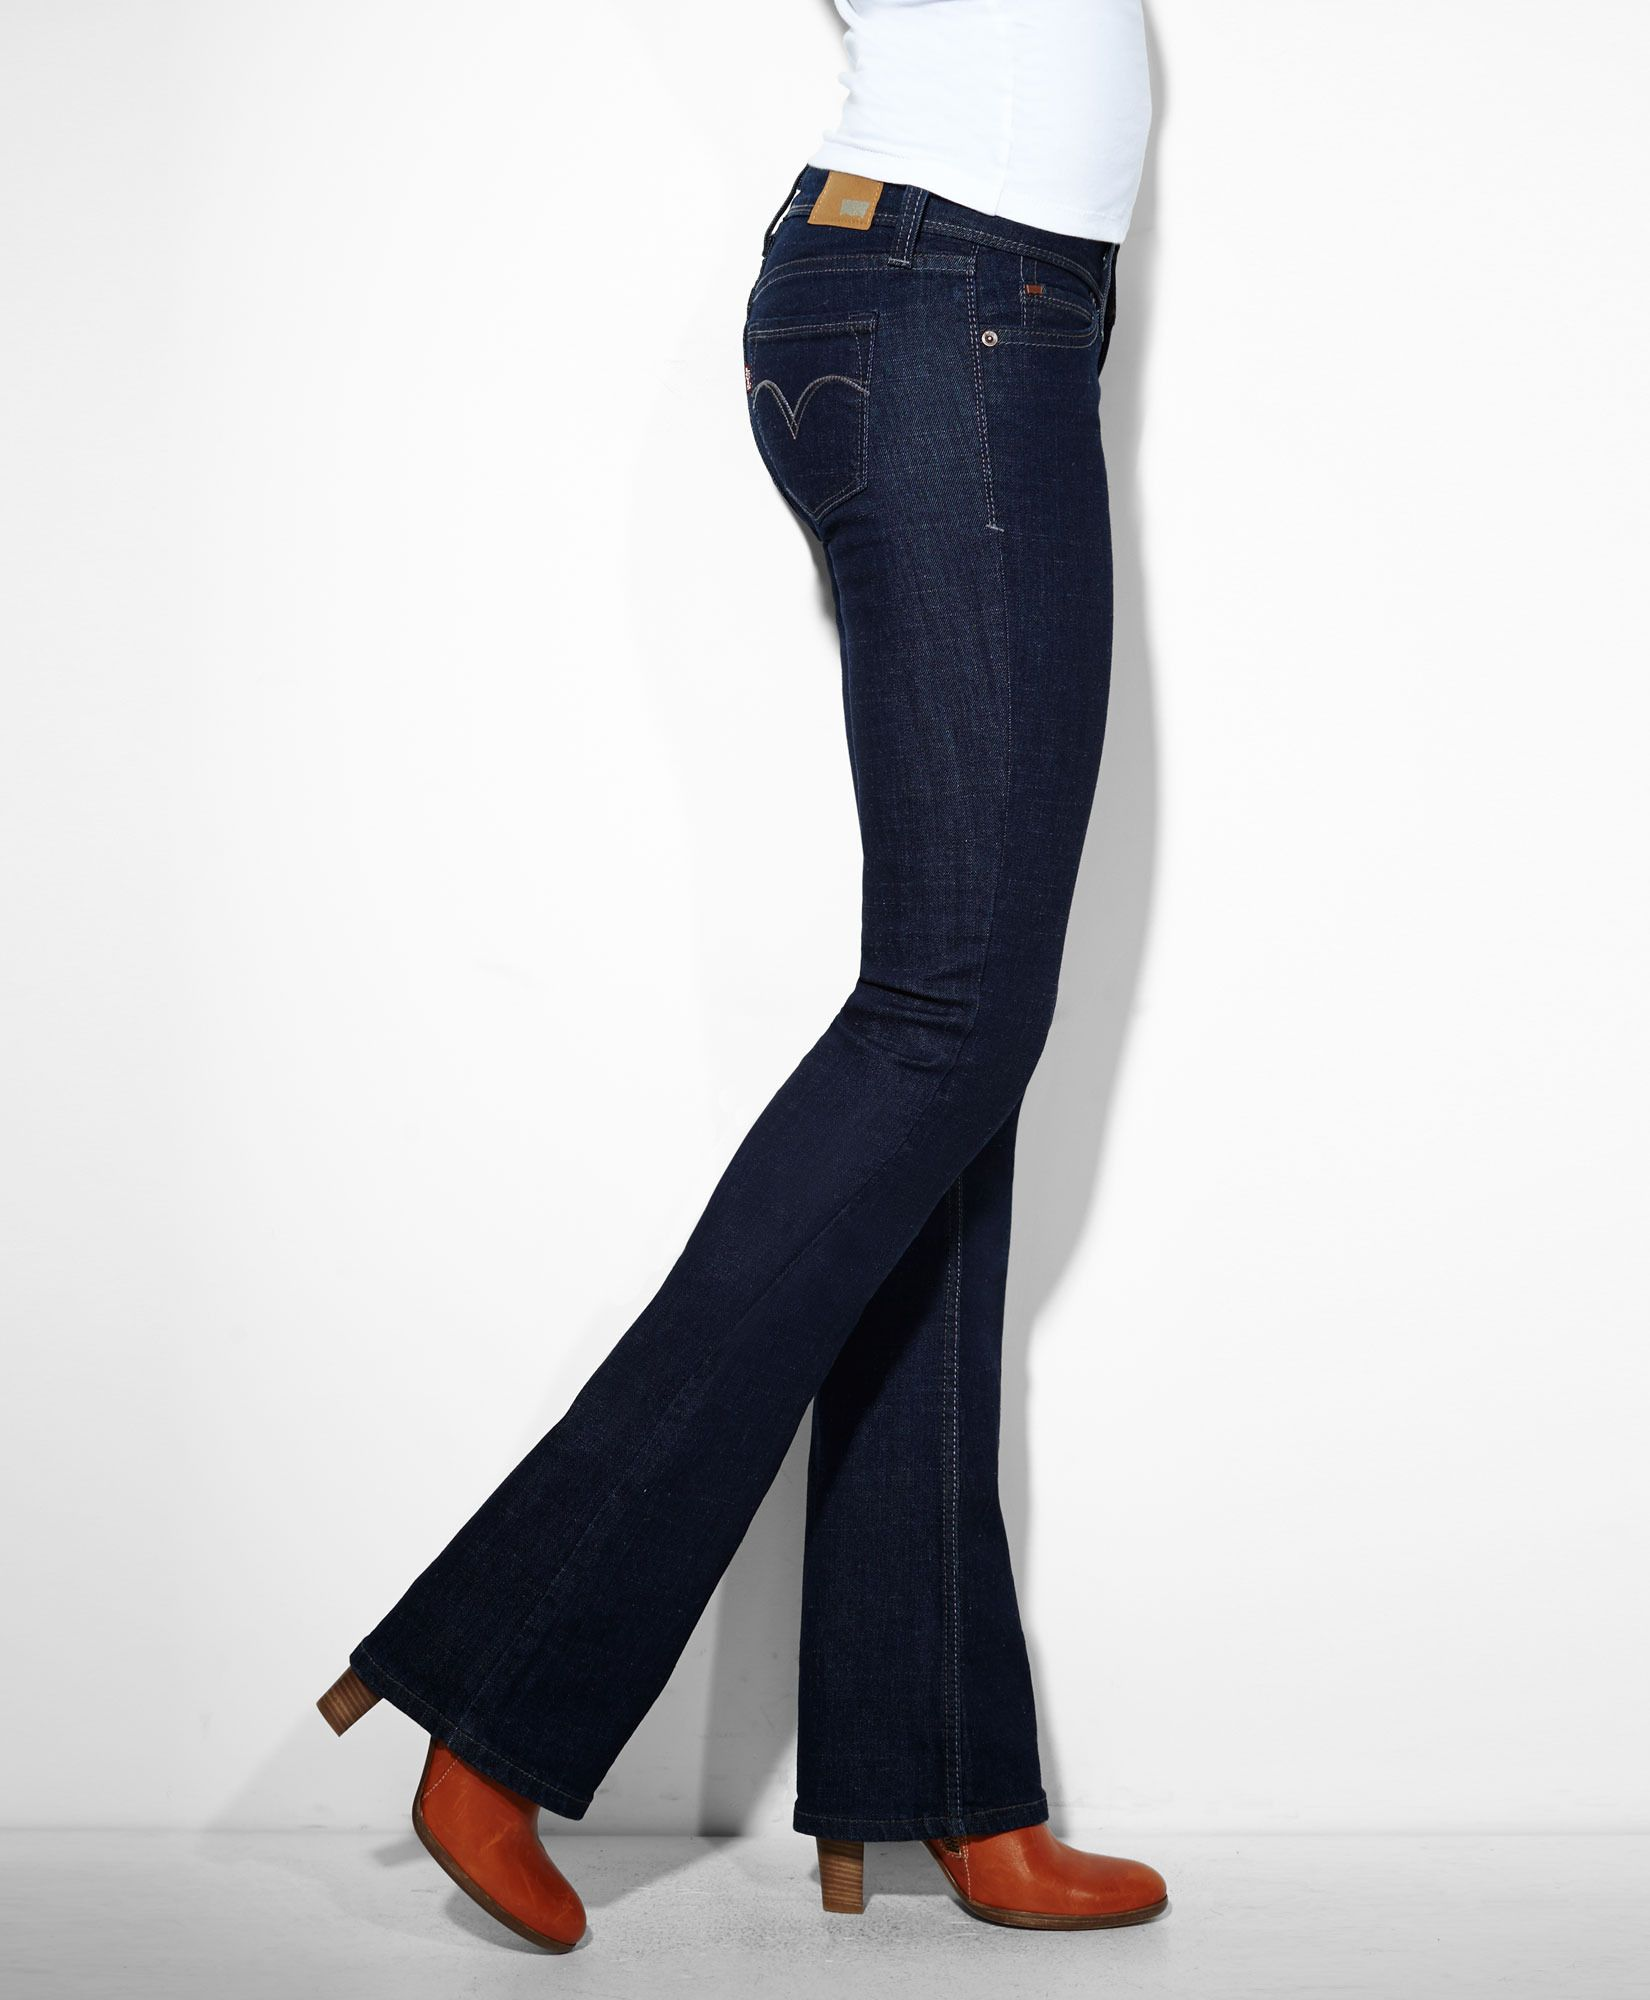 : Search Results   Clothes, Jacket outfits, Jeans